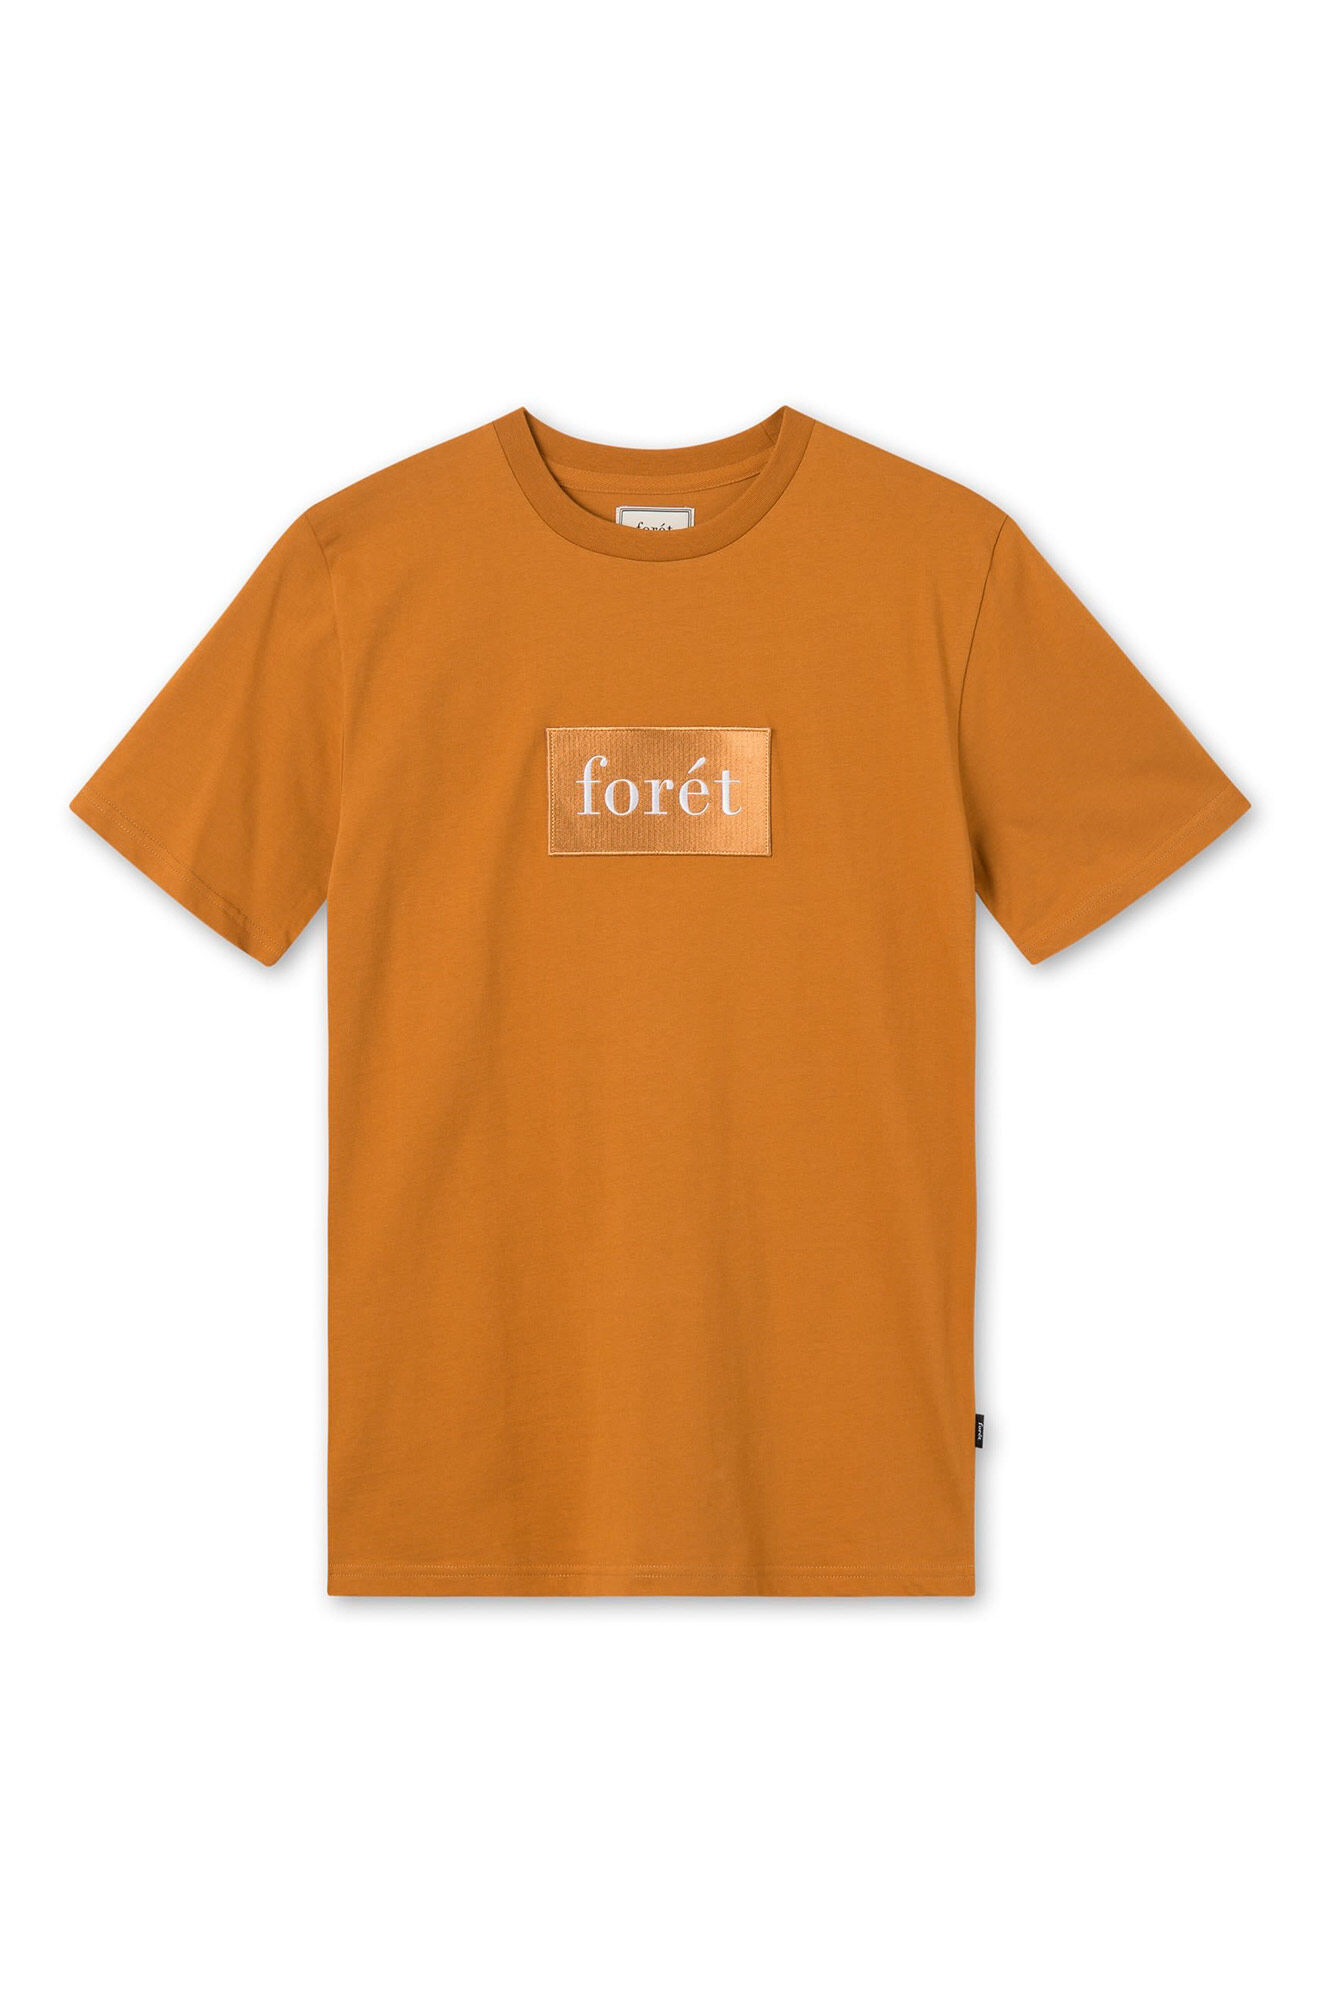 Reef t-shirt 605, TAN